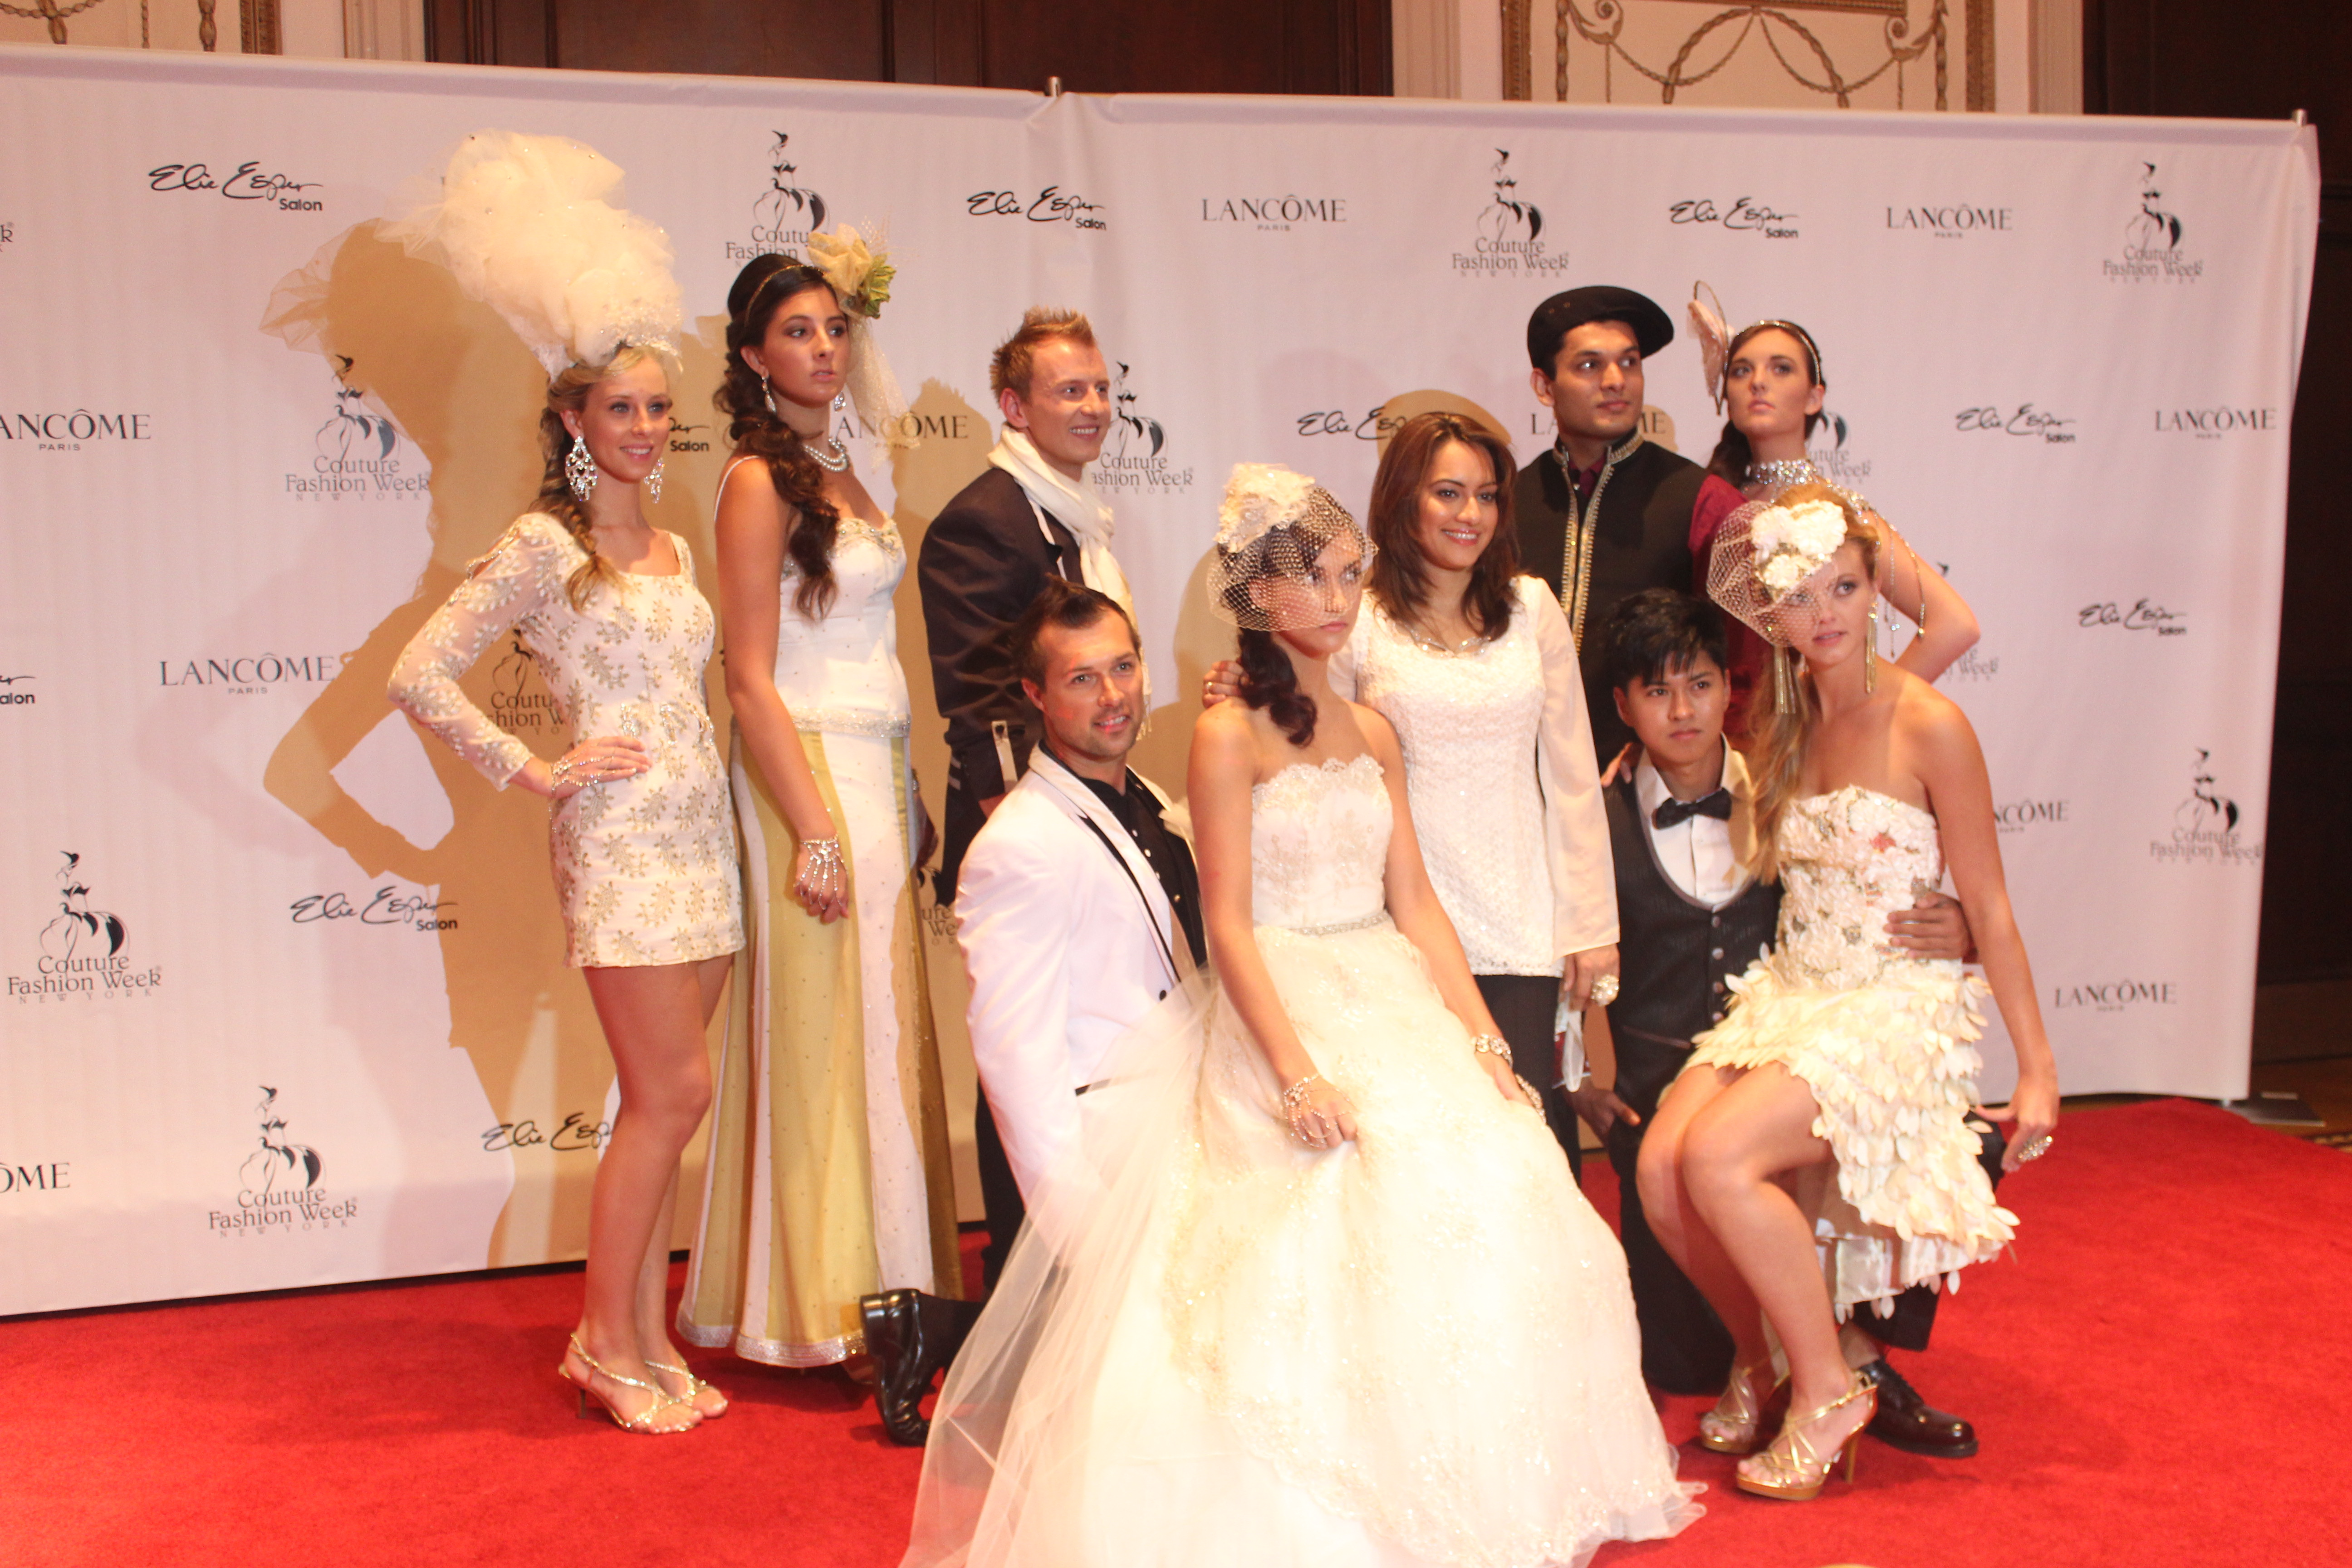 By Merry Wu On Saturday September 13, Couture Fashion Week brought together 7 Indian Designers...